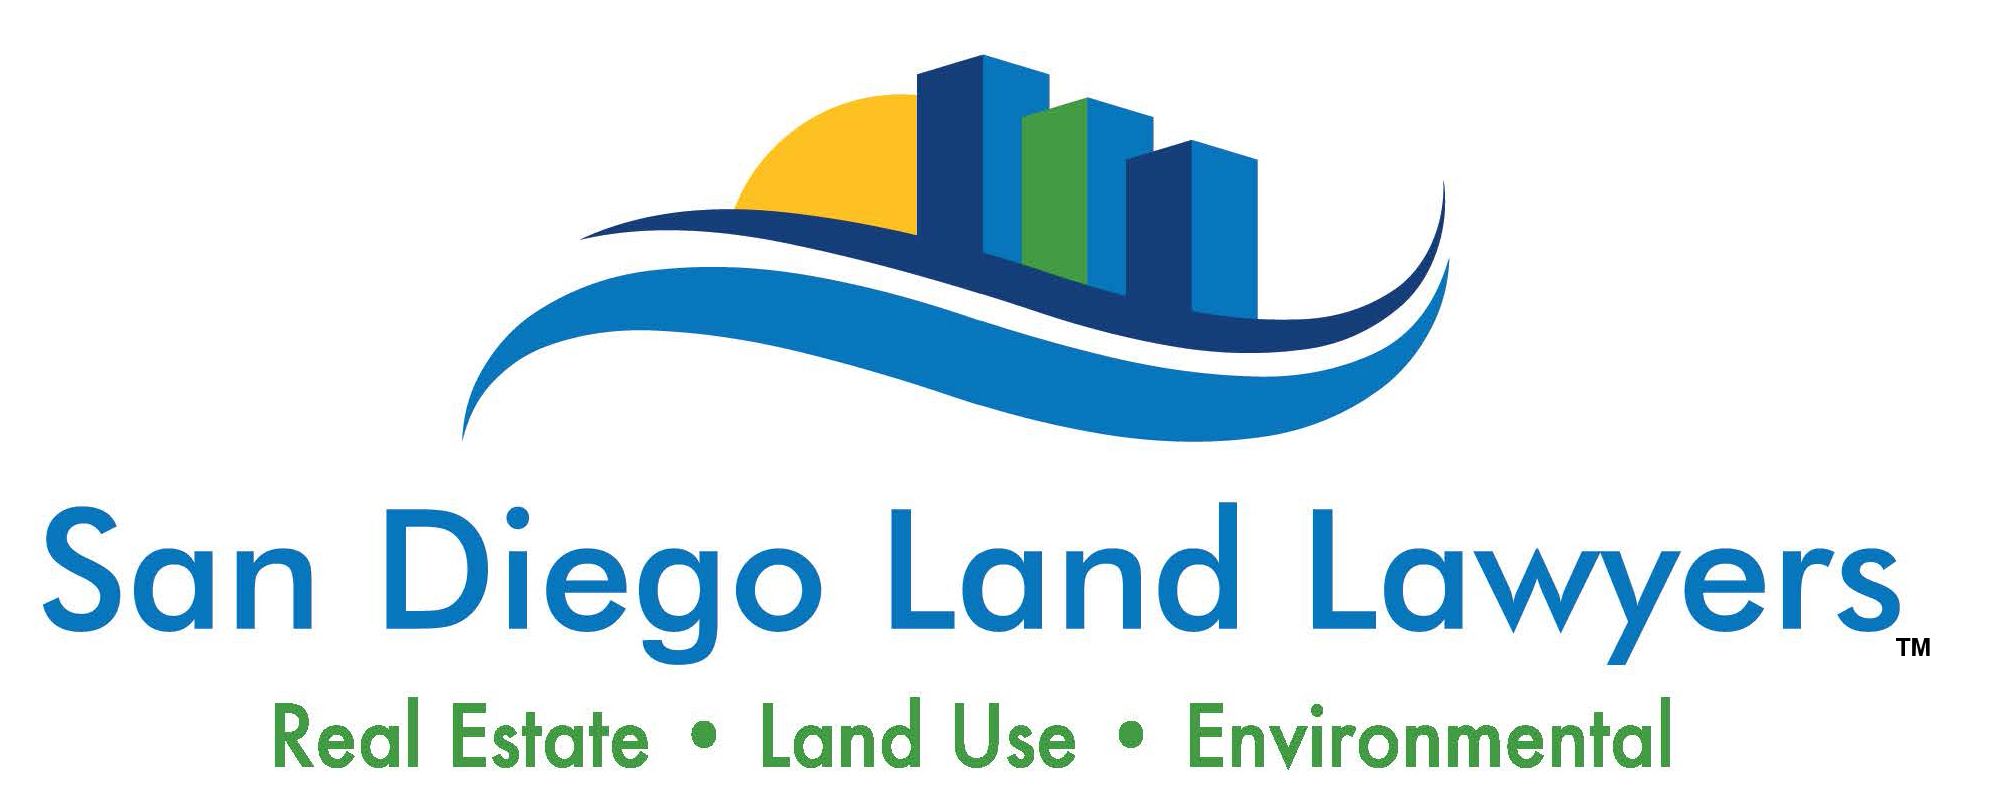 San Diego Land Lawyers